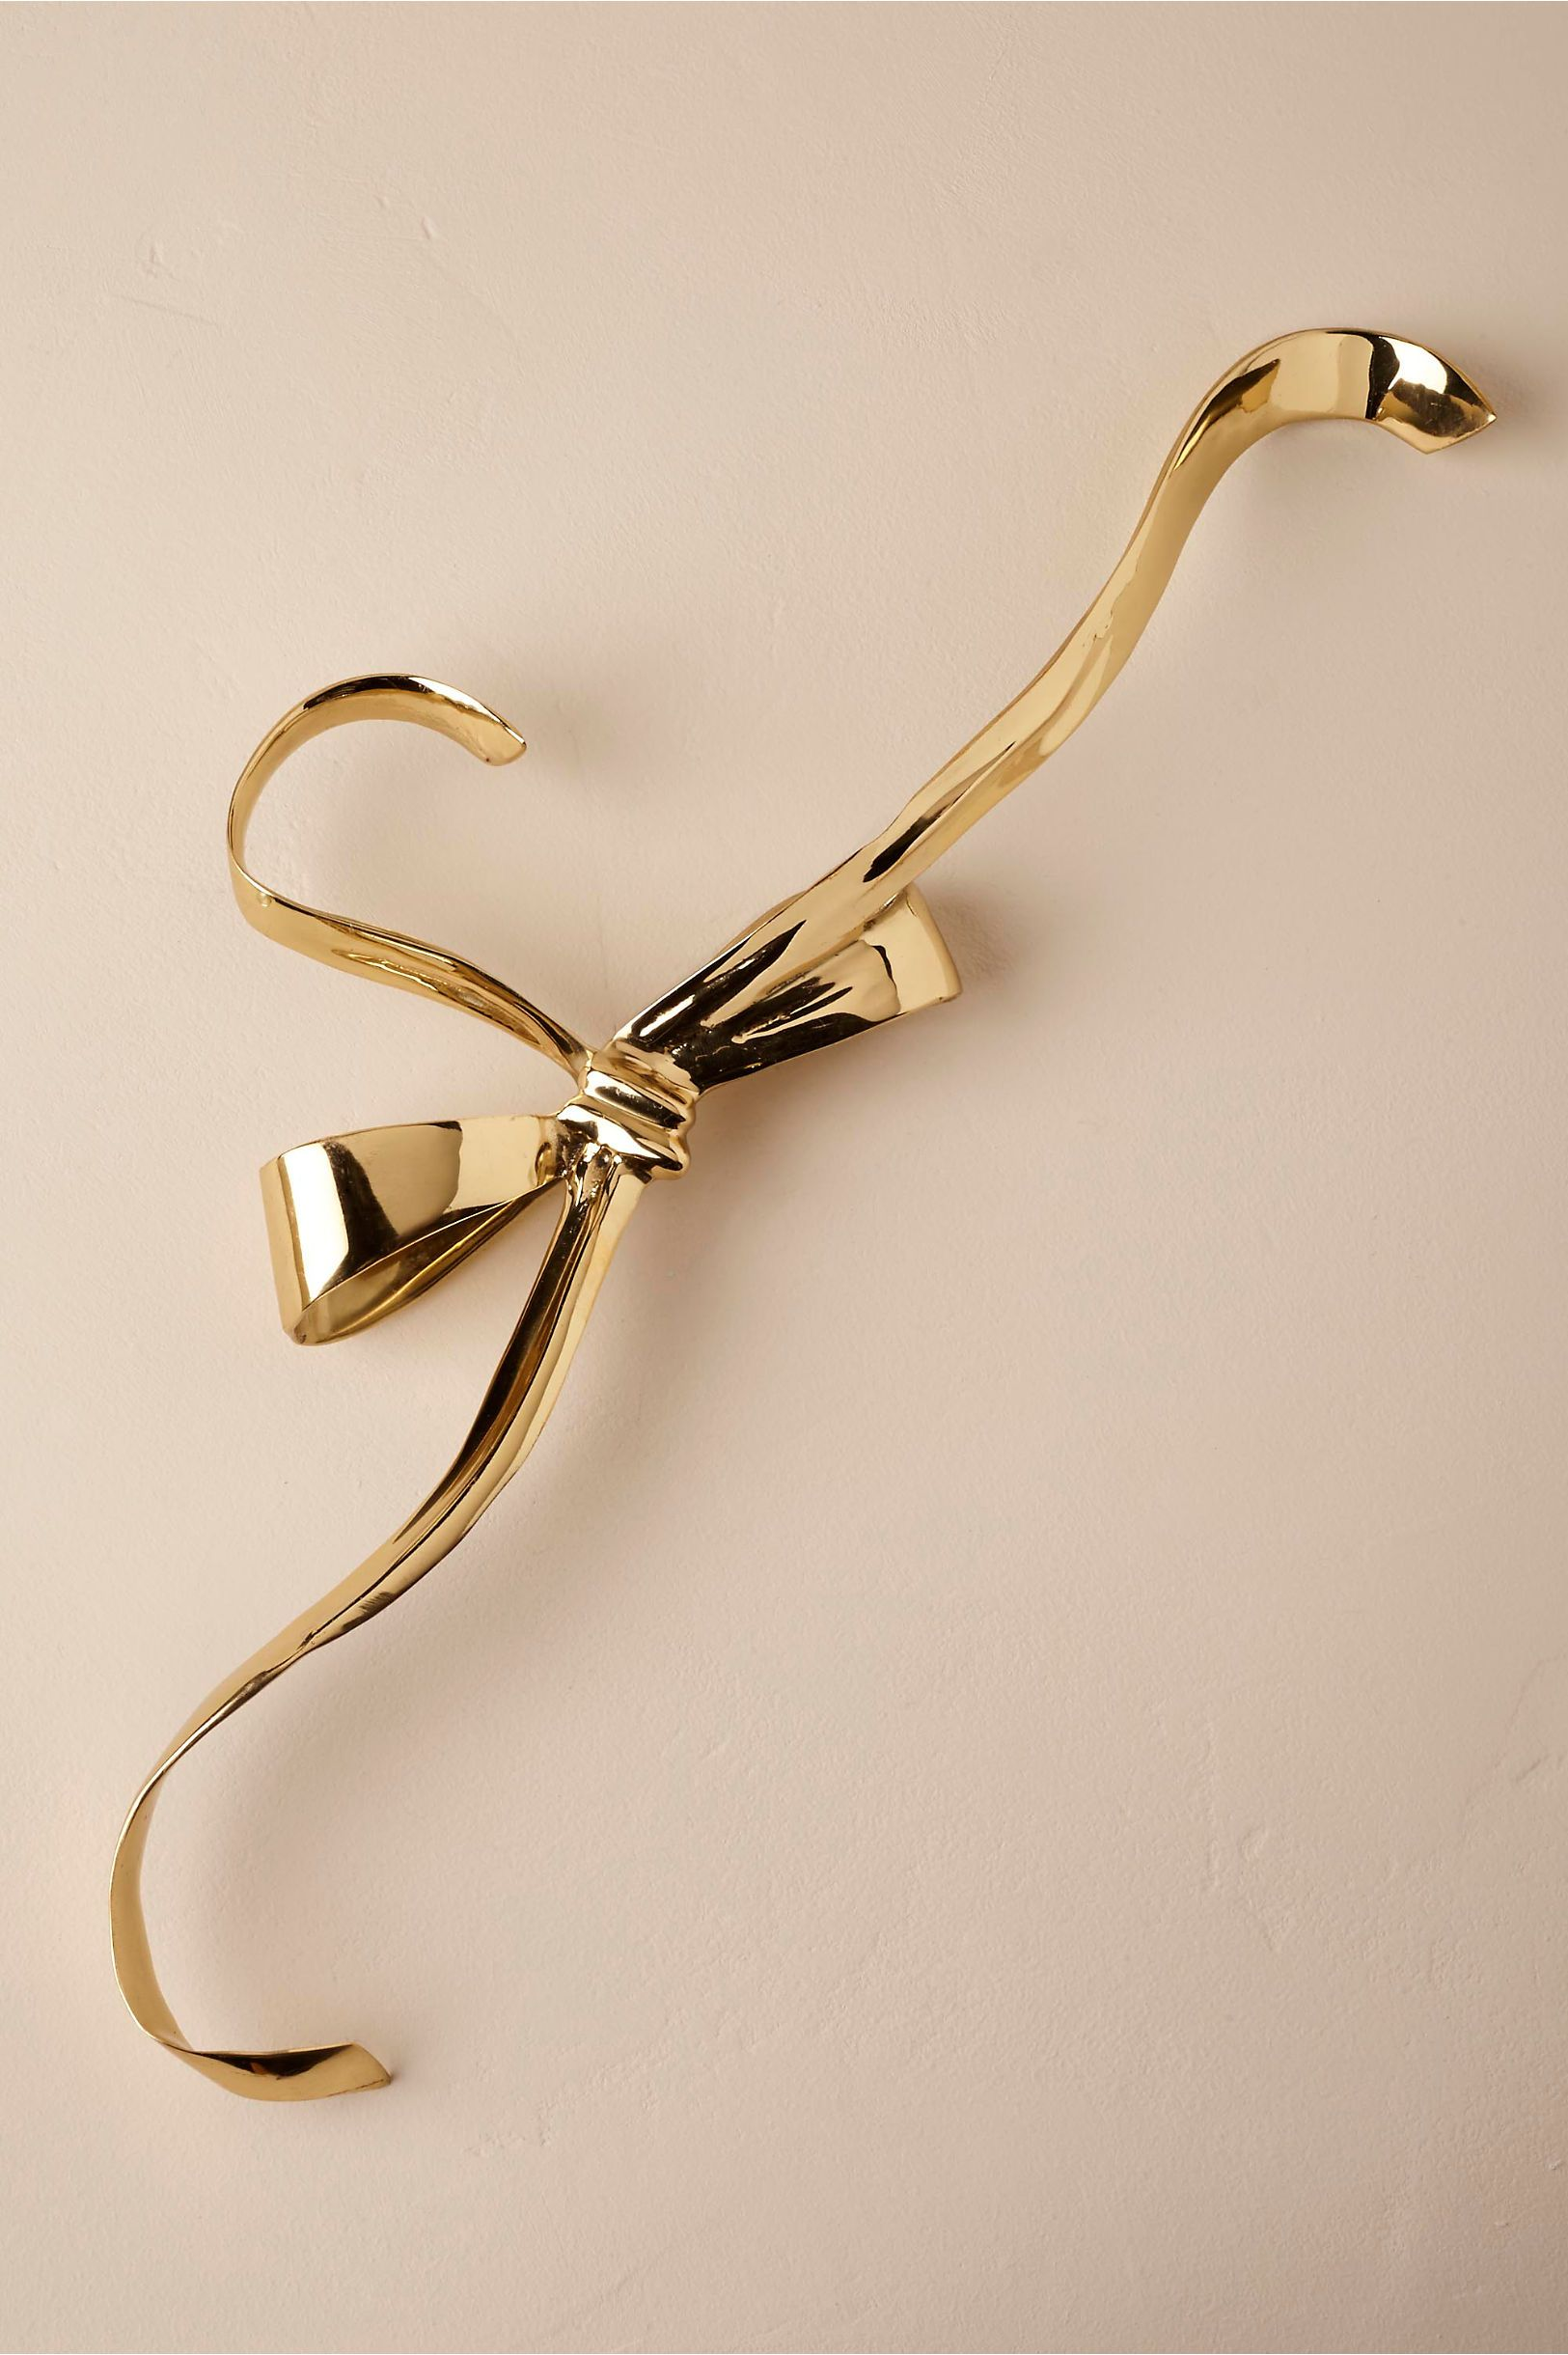 10 Beautiful Wedding Dress Hangers